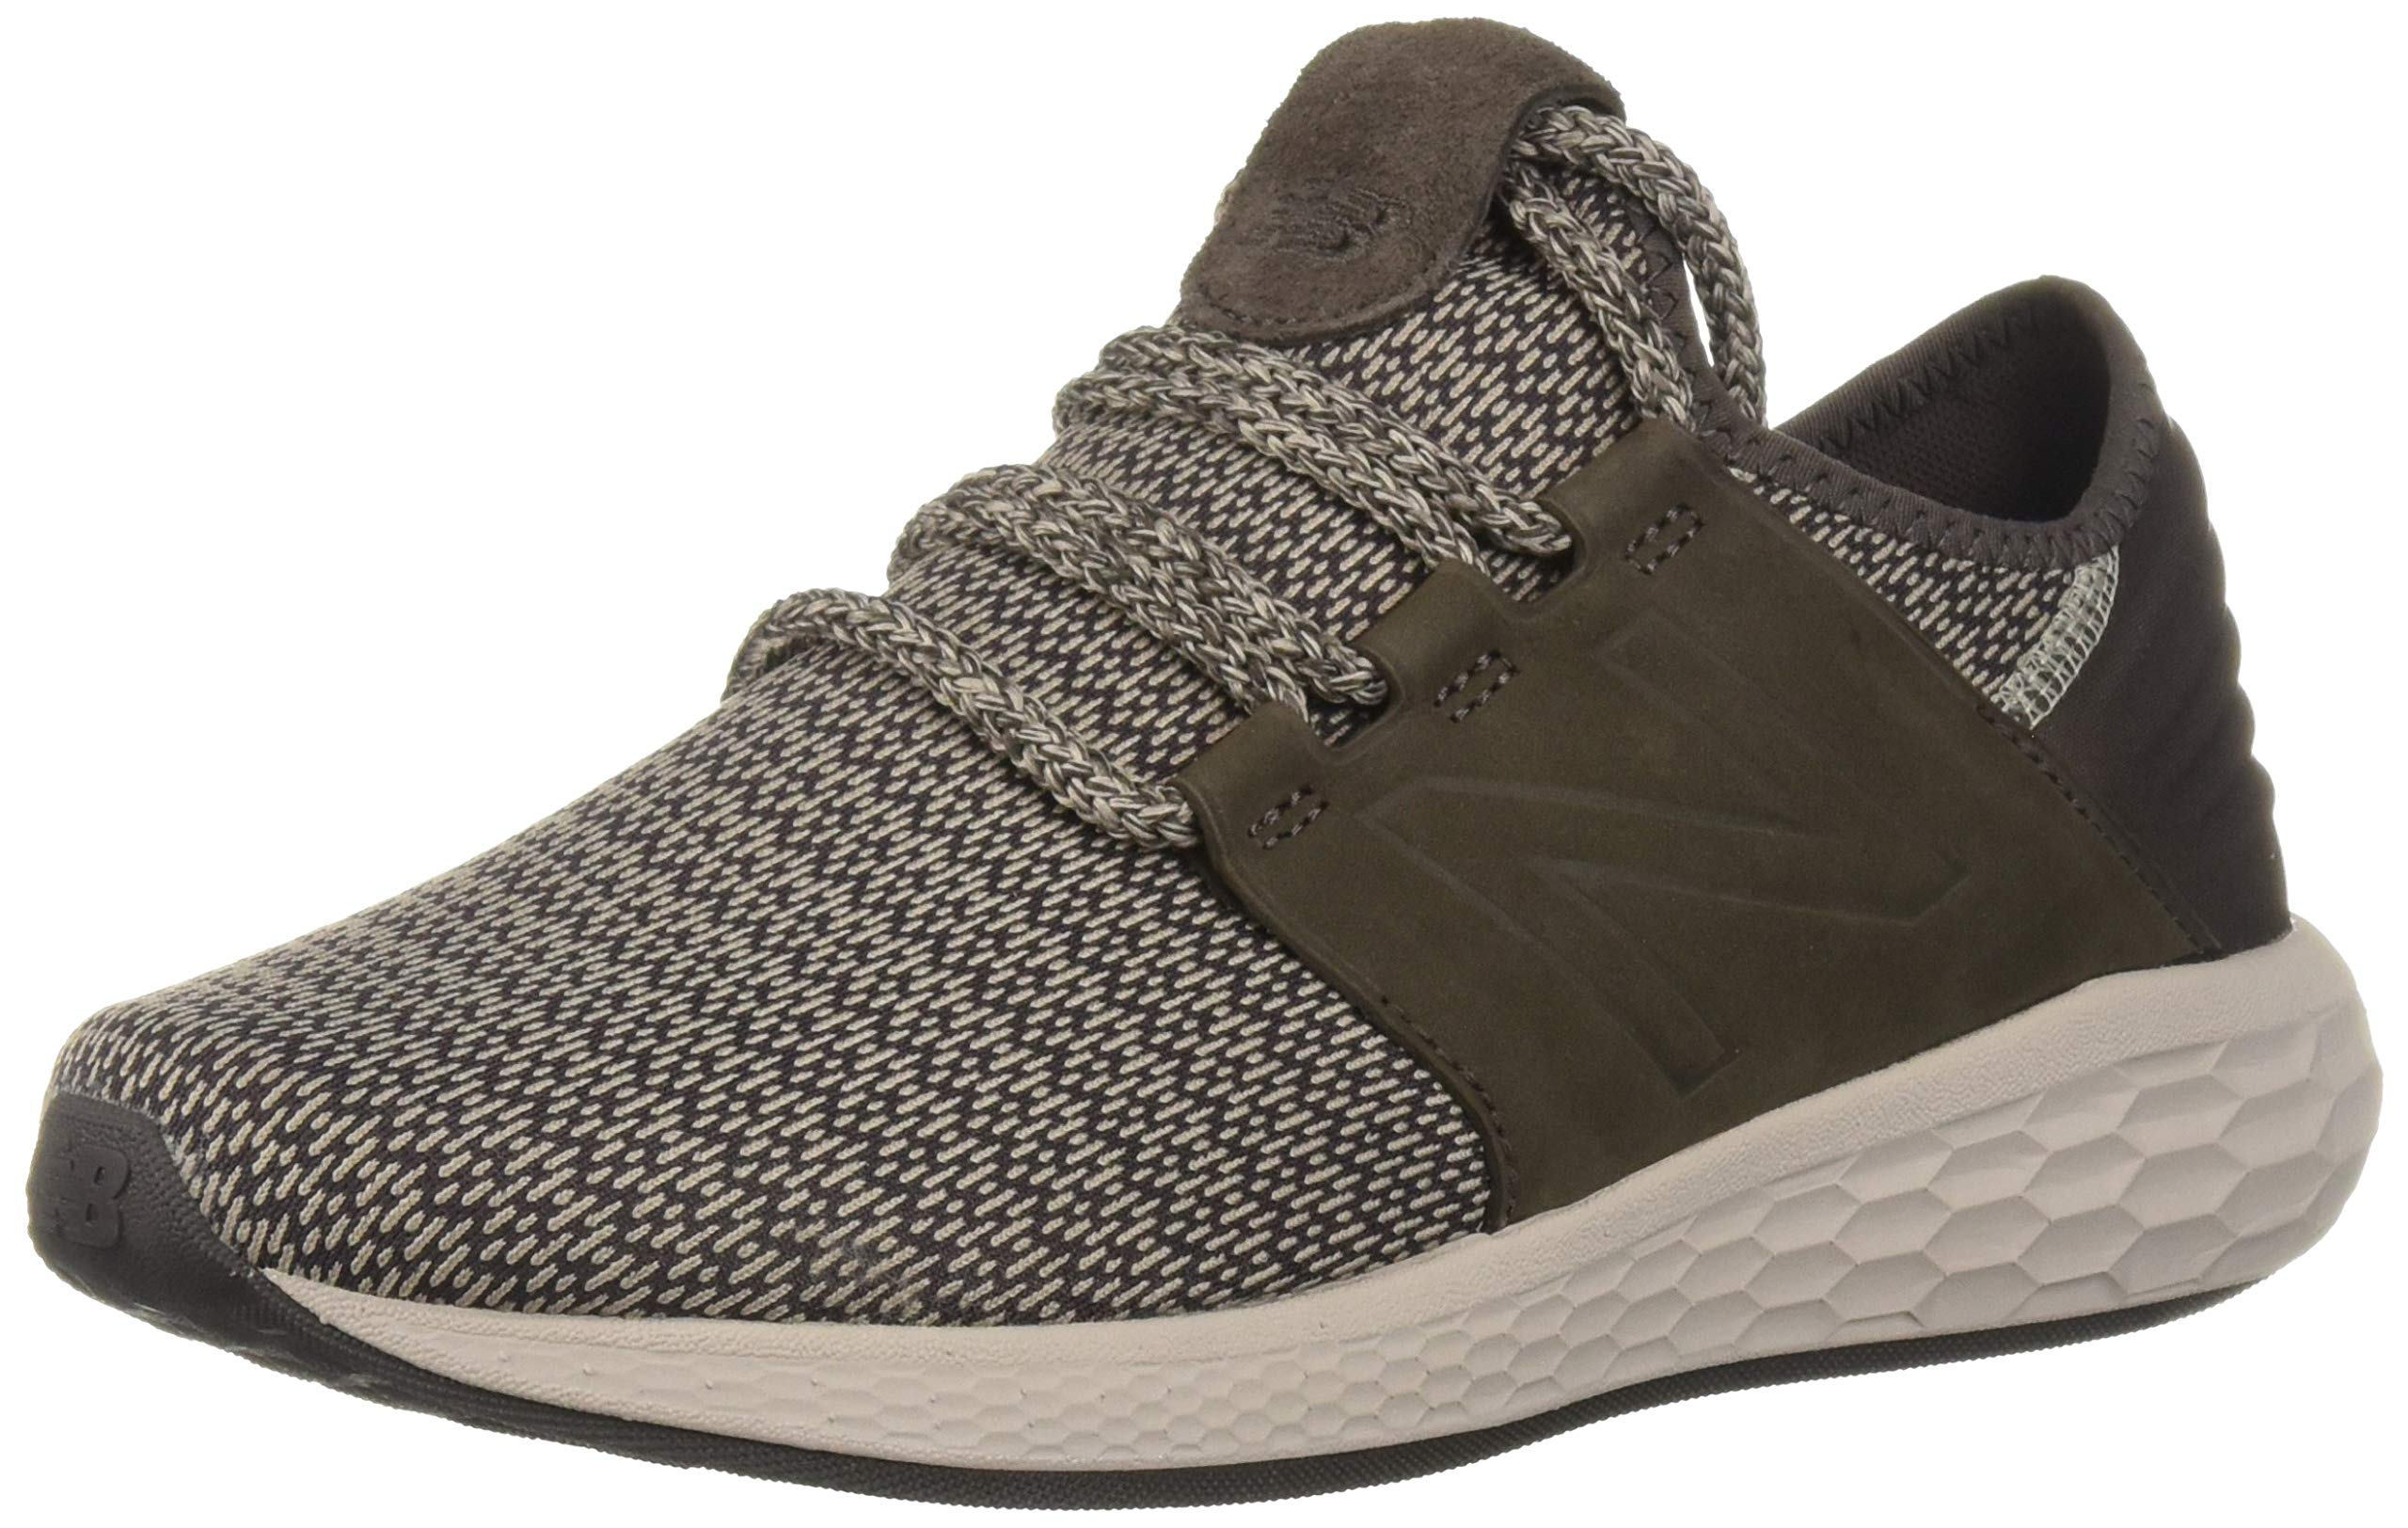 New Balance Men's Cruz V2 Fresh Foam Running Shoe, americano/flat white, 15 2E US by New Balance (Image #1)